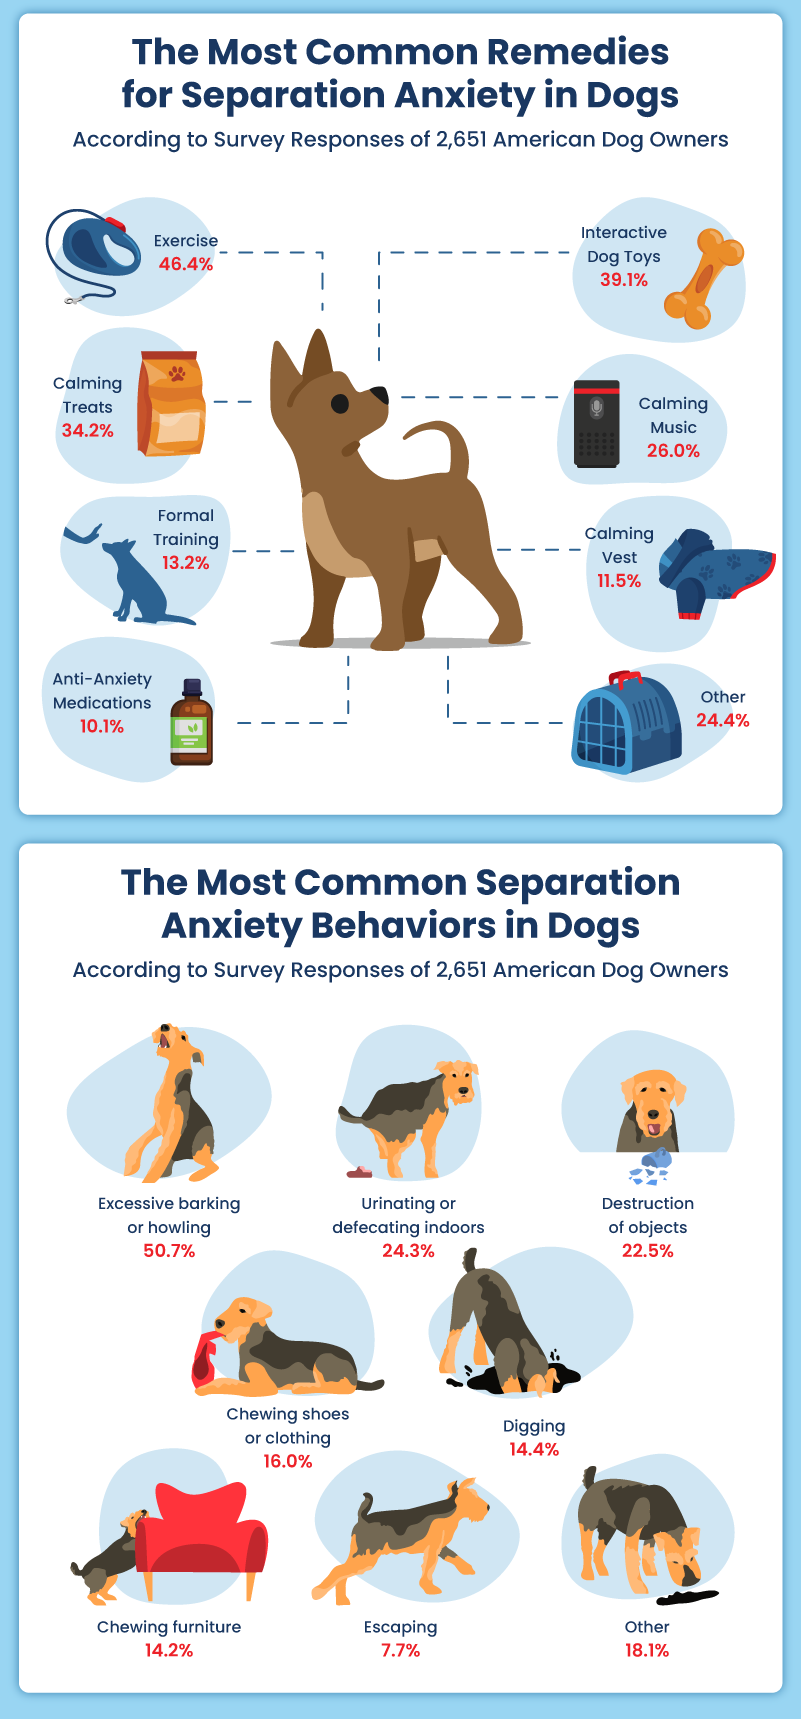 Infographic showing the most common behaviors in anxious dogs and remedies for anxious dogs